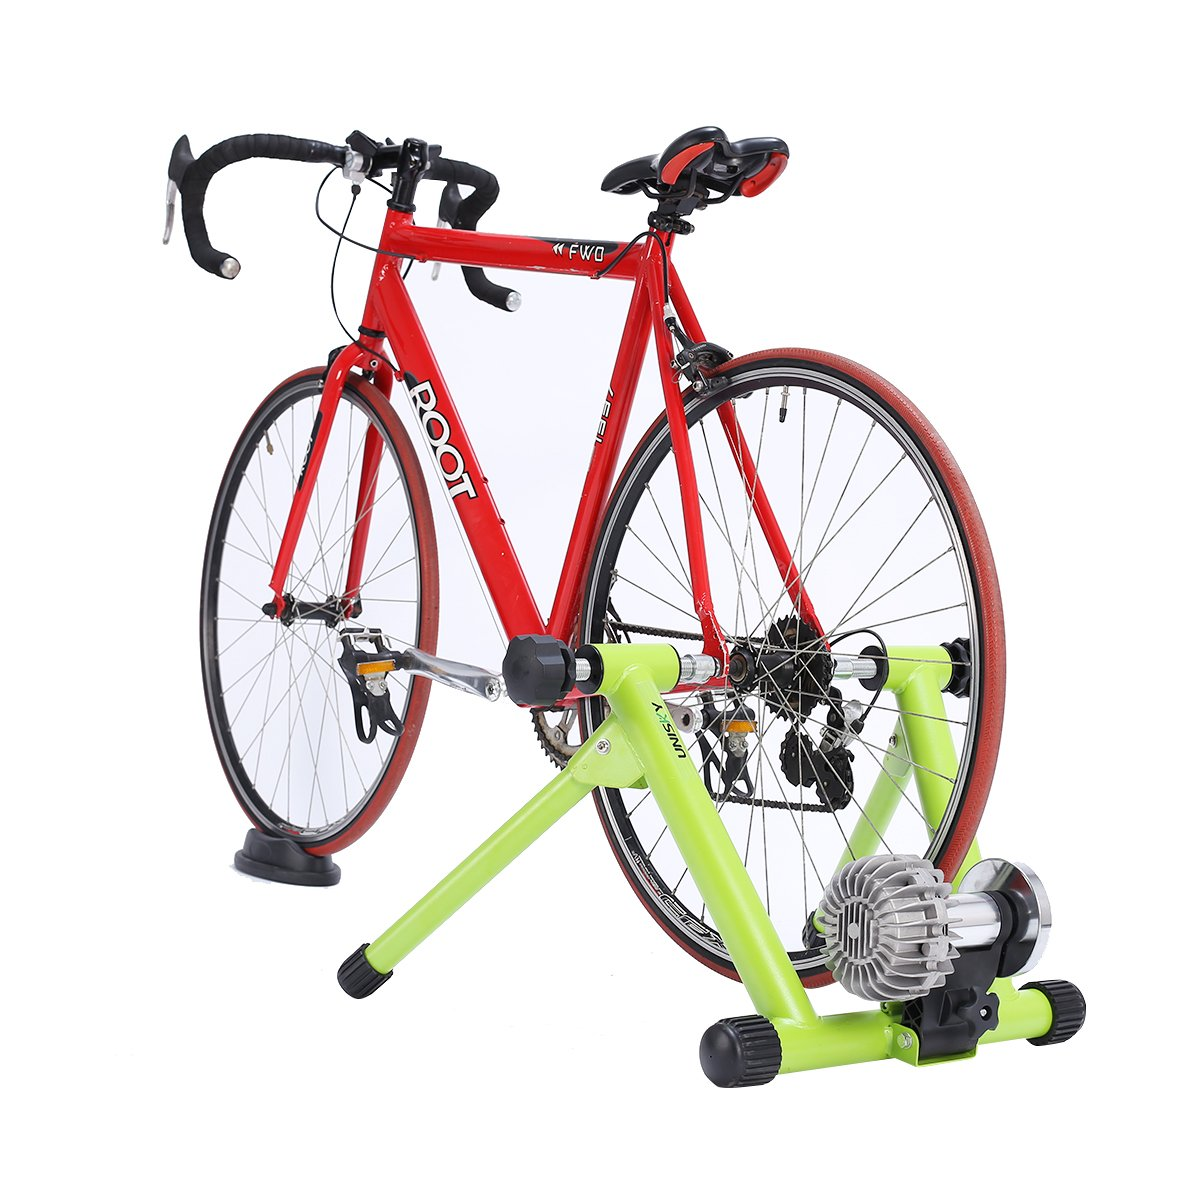 Bike Trainers & Accessories : Online Shopping For Clothing